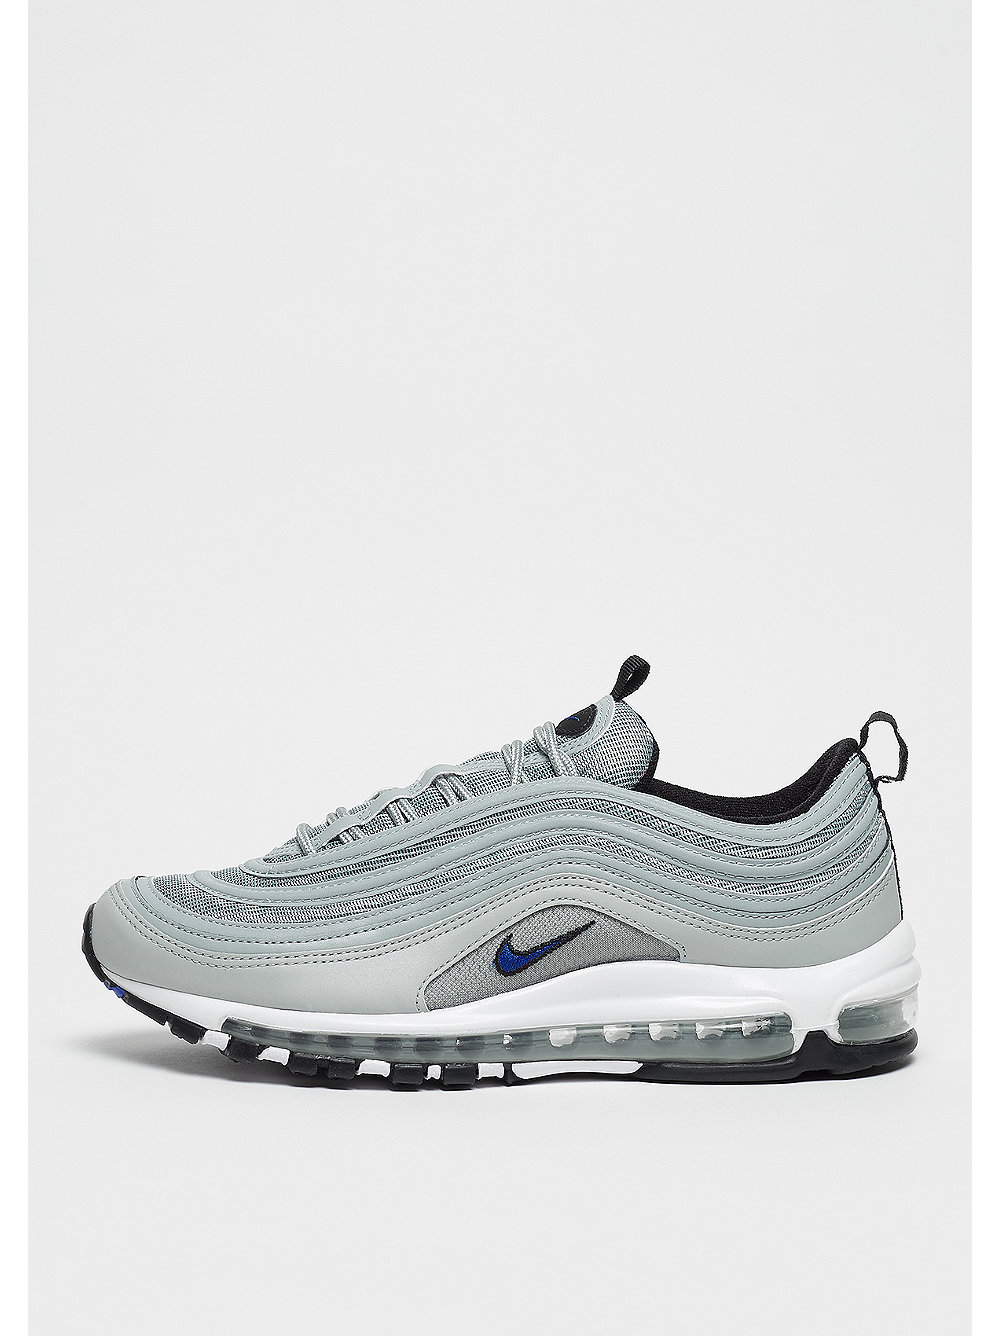 nike air max 97 light pumice racer blue black white bei. Black Bedroom Furniture Sets. Home Design Ideas